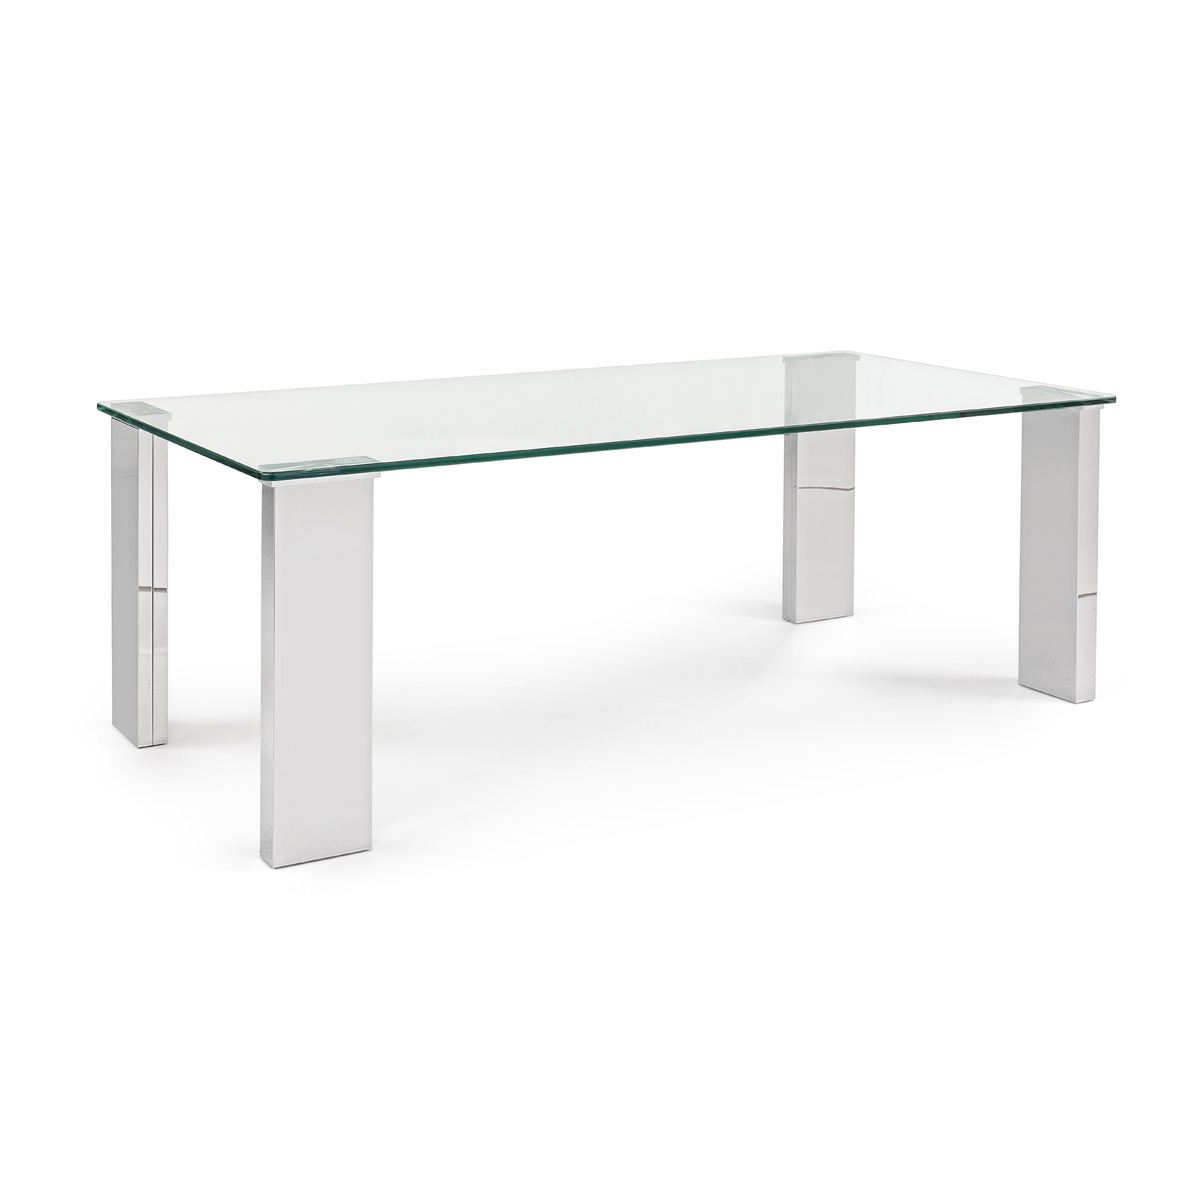 Photos 1: Bizzotto Rectangular table in glass l. 120 x 60 0731955